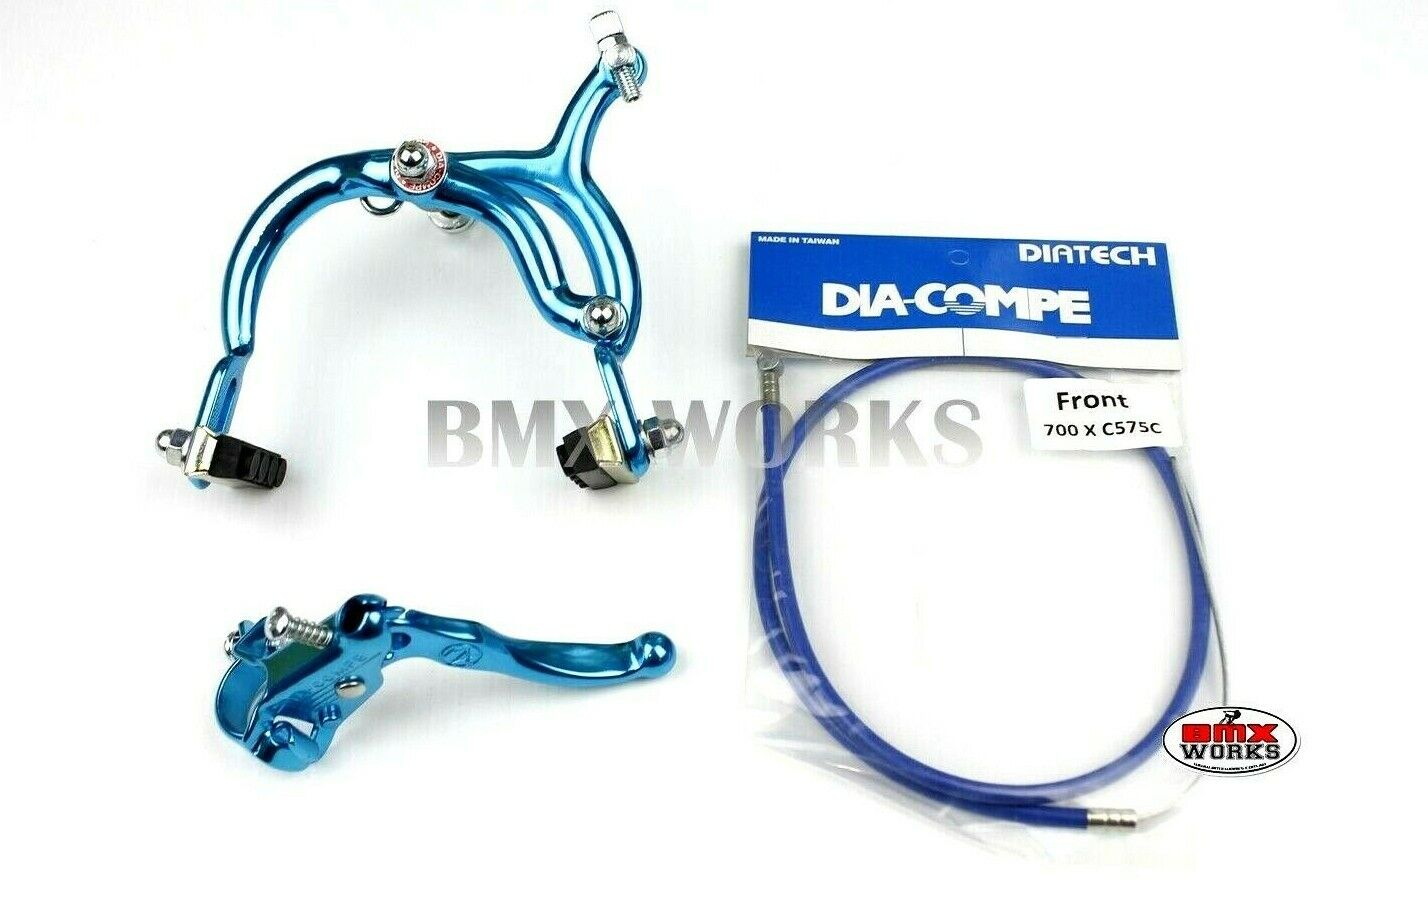 Dia-Compe Silver /& Black MX890 with MX121 Lever Package Old School BMX Tech 3